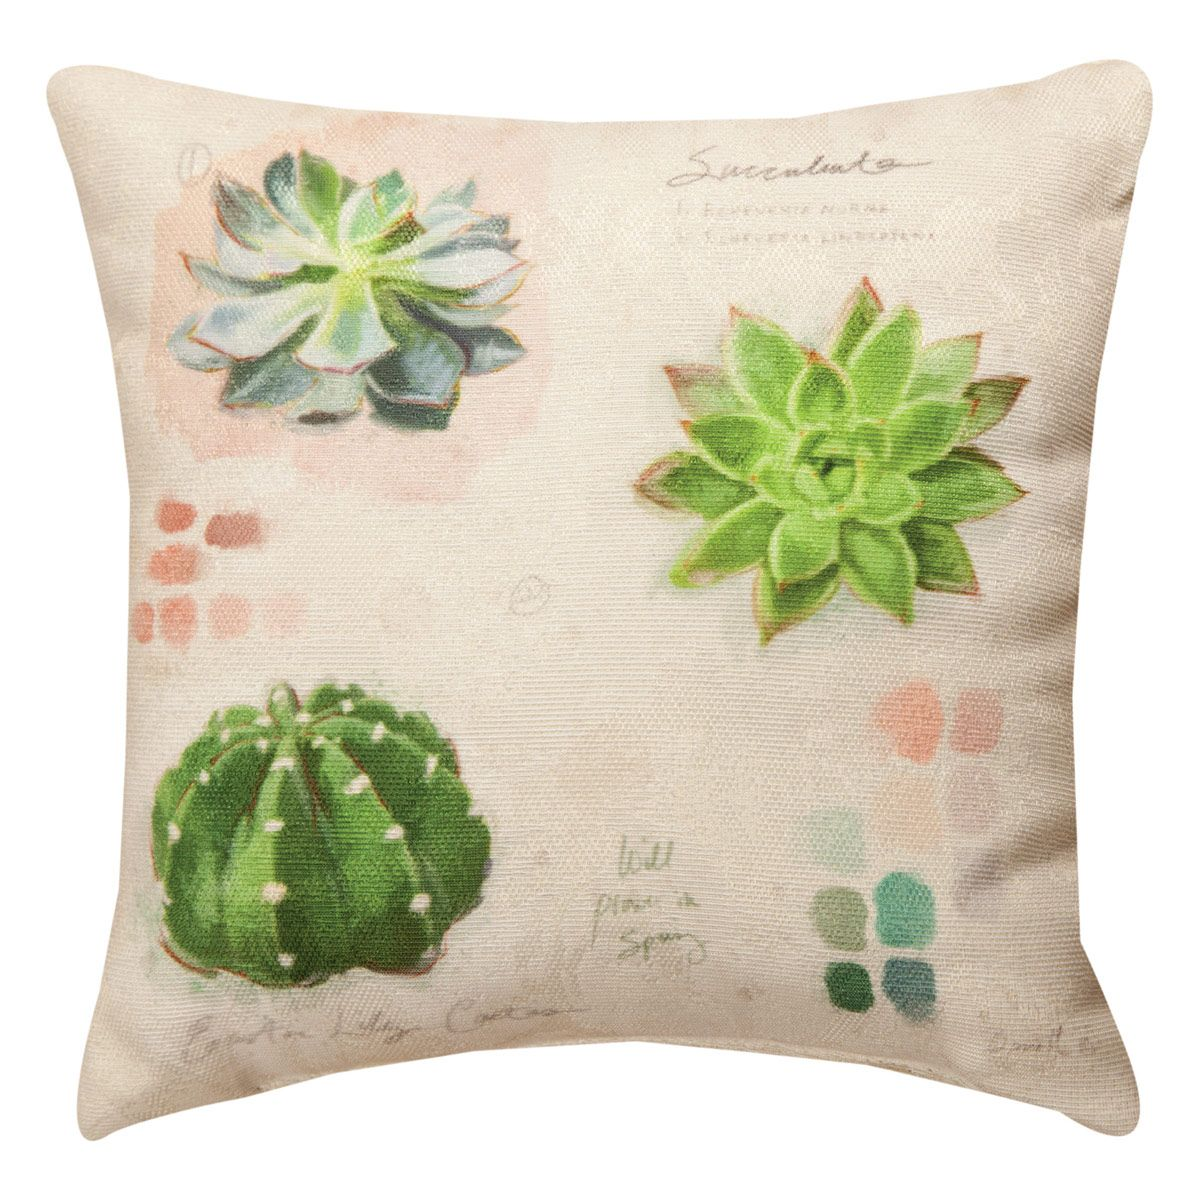 Succulent Collection Pillow - 12 x 12